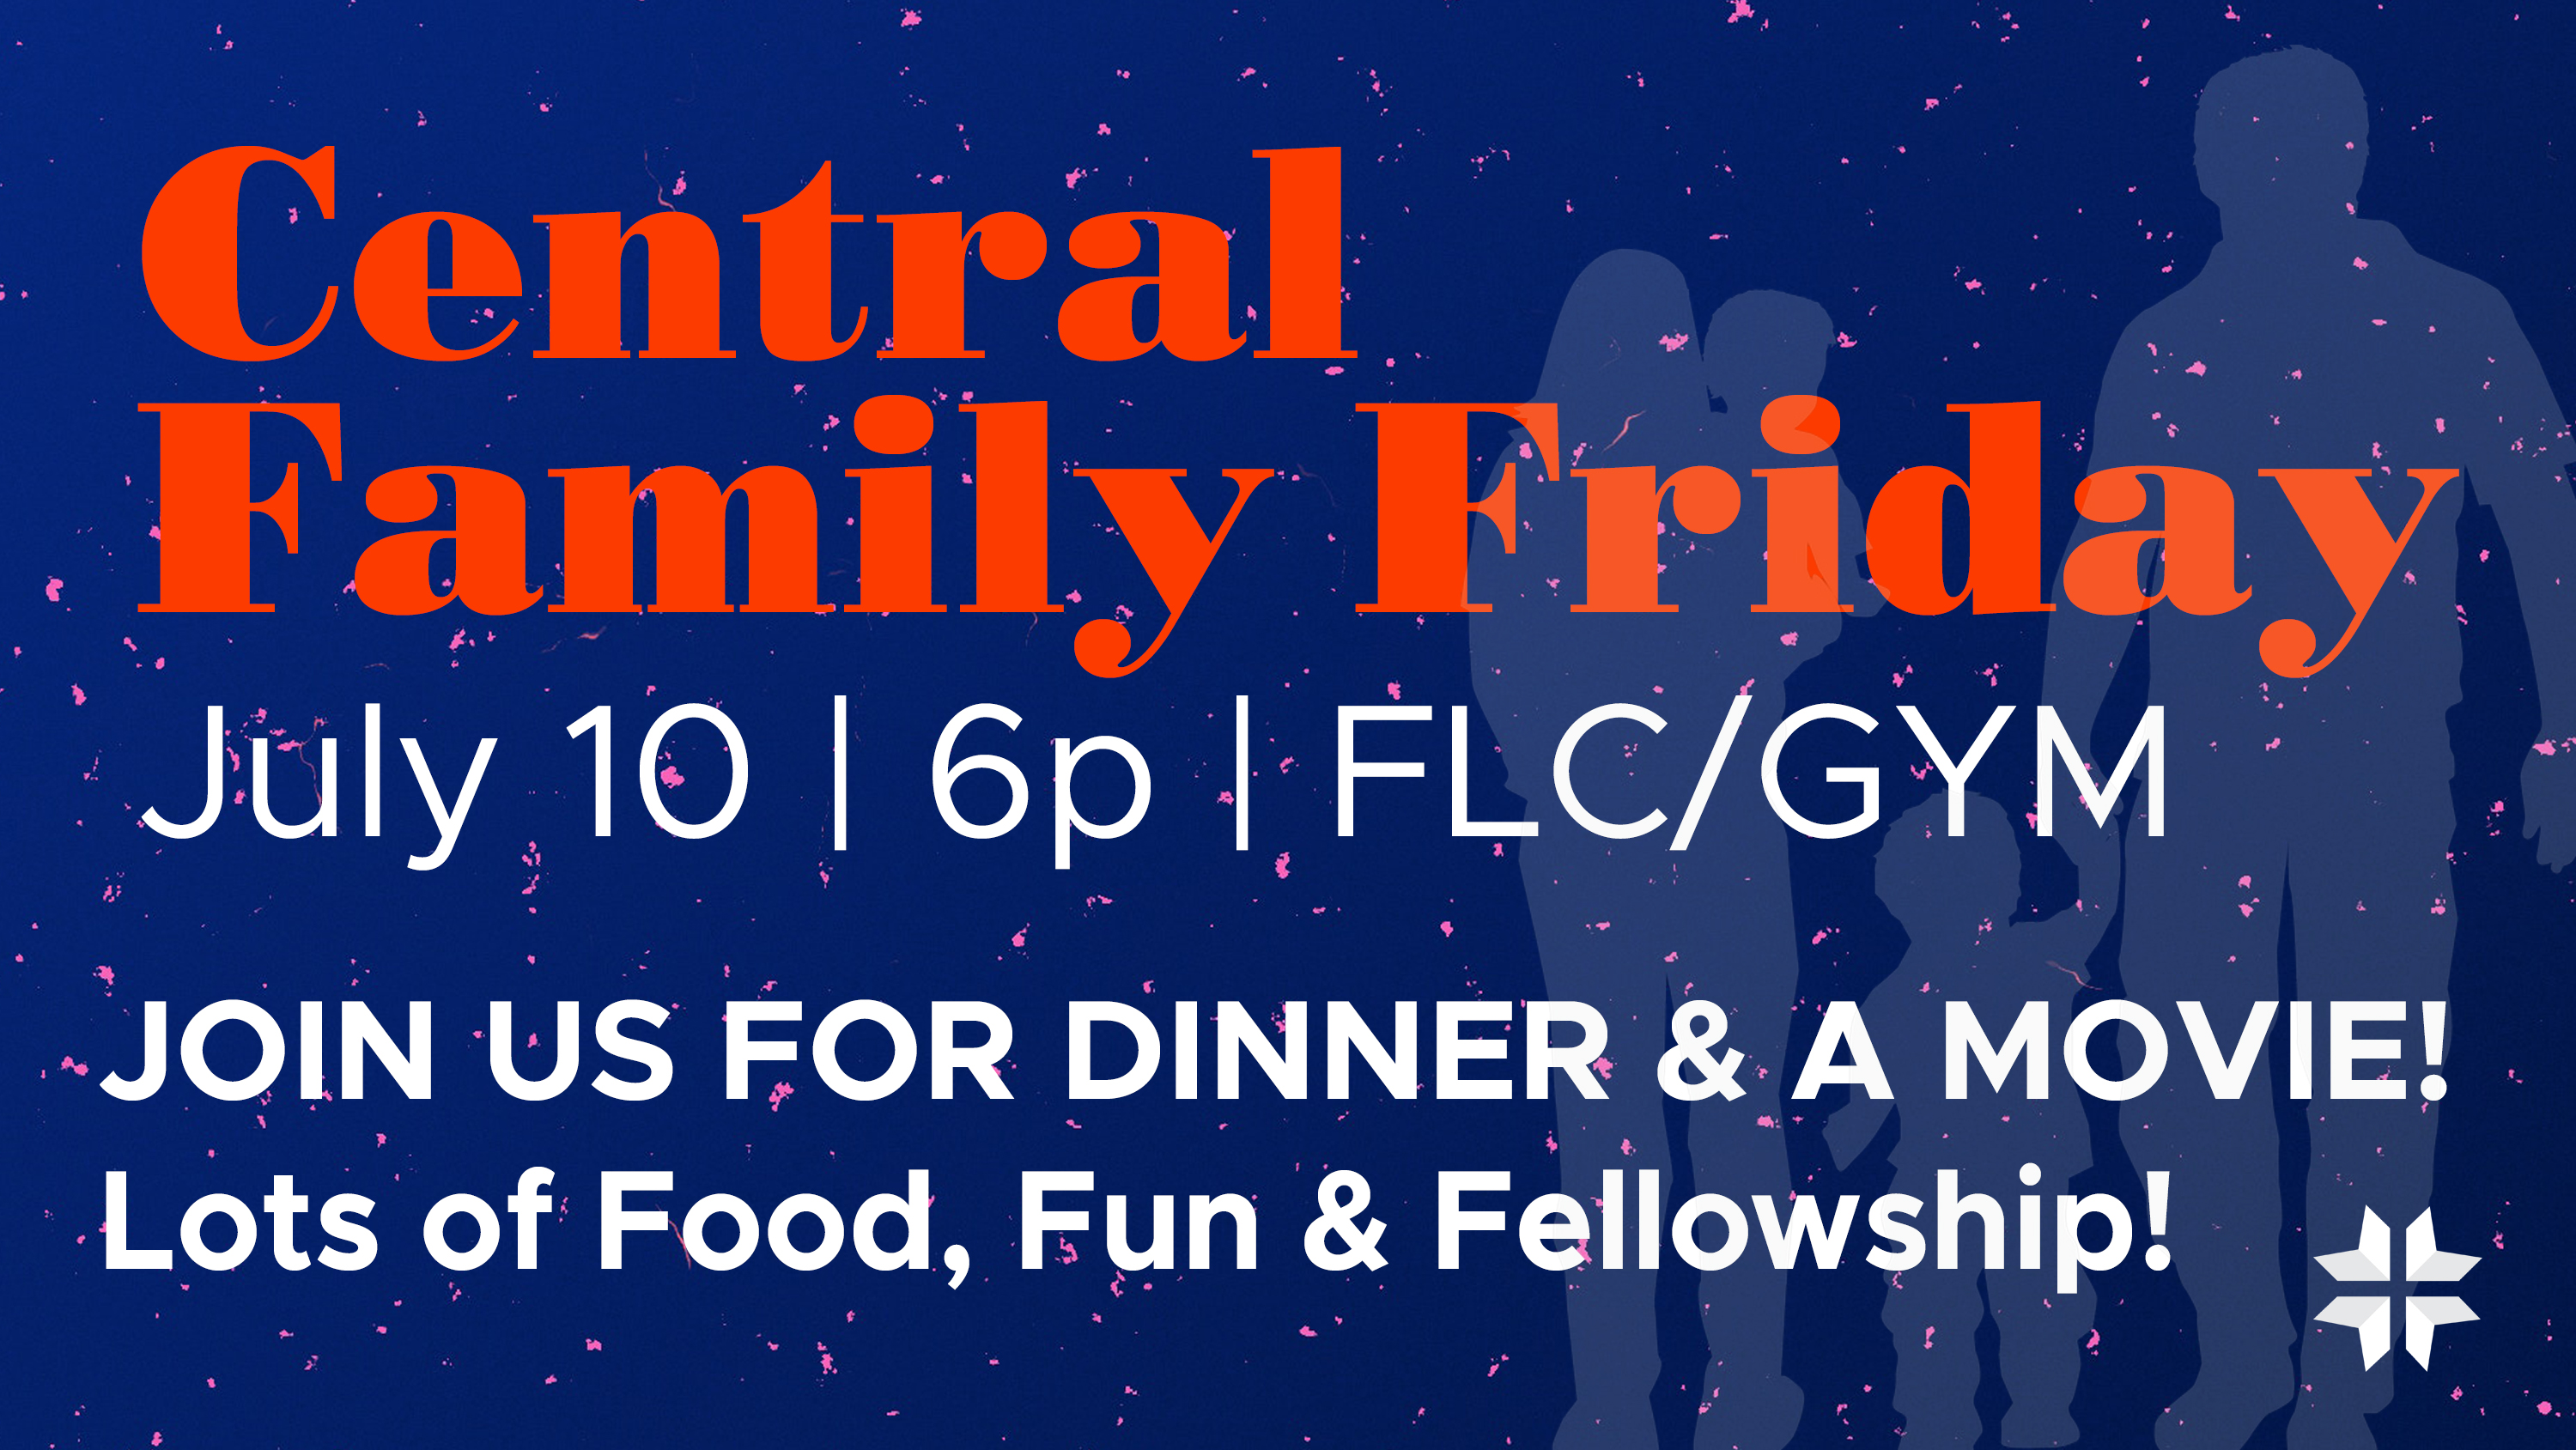 Central Family Friday image